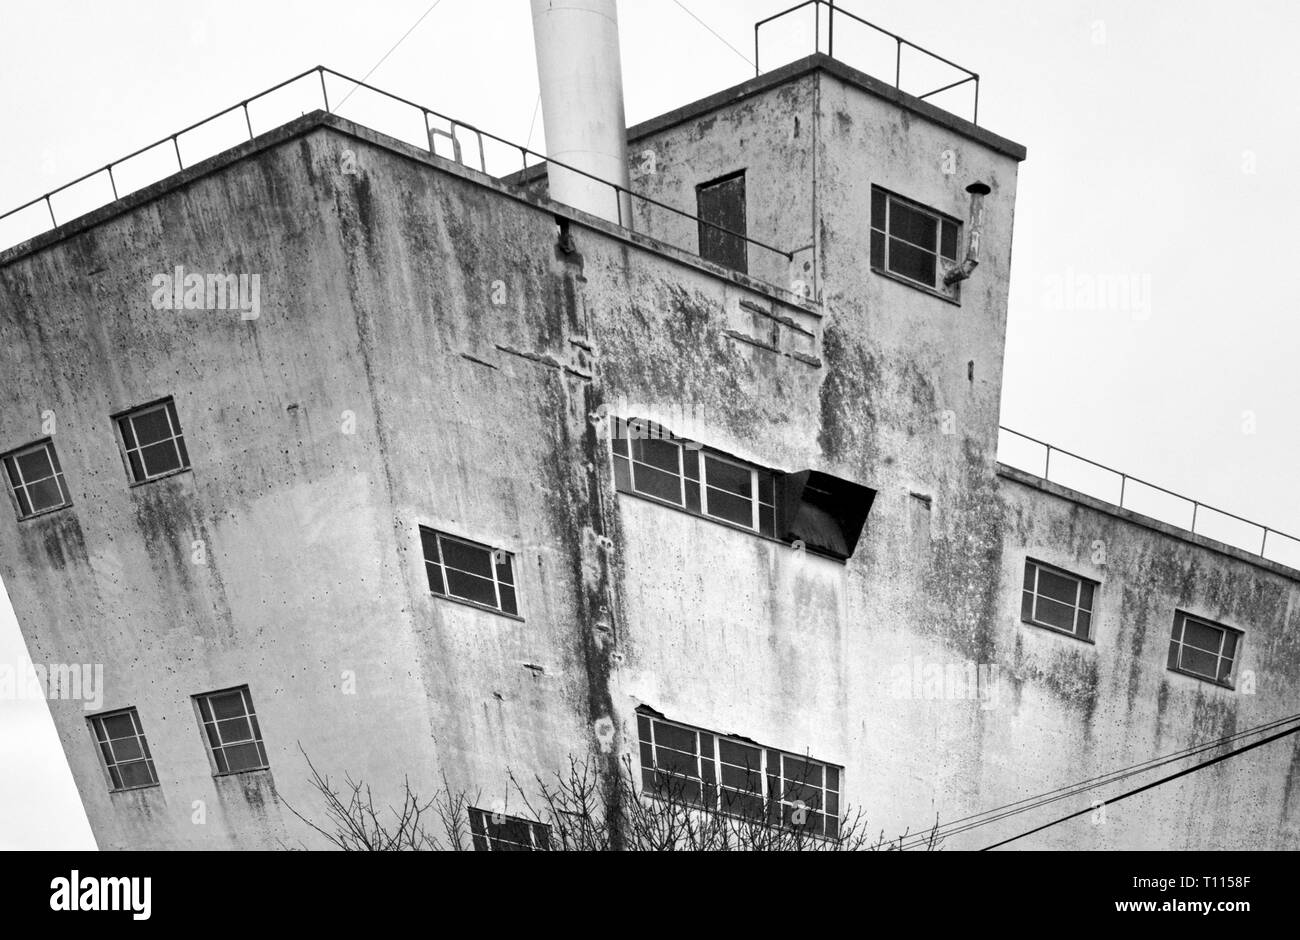 old redundant factory building - Stock Image